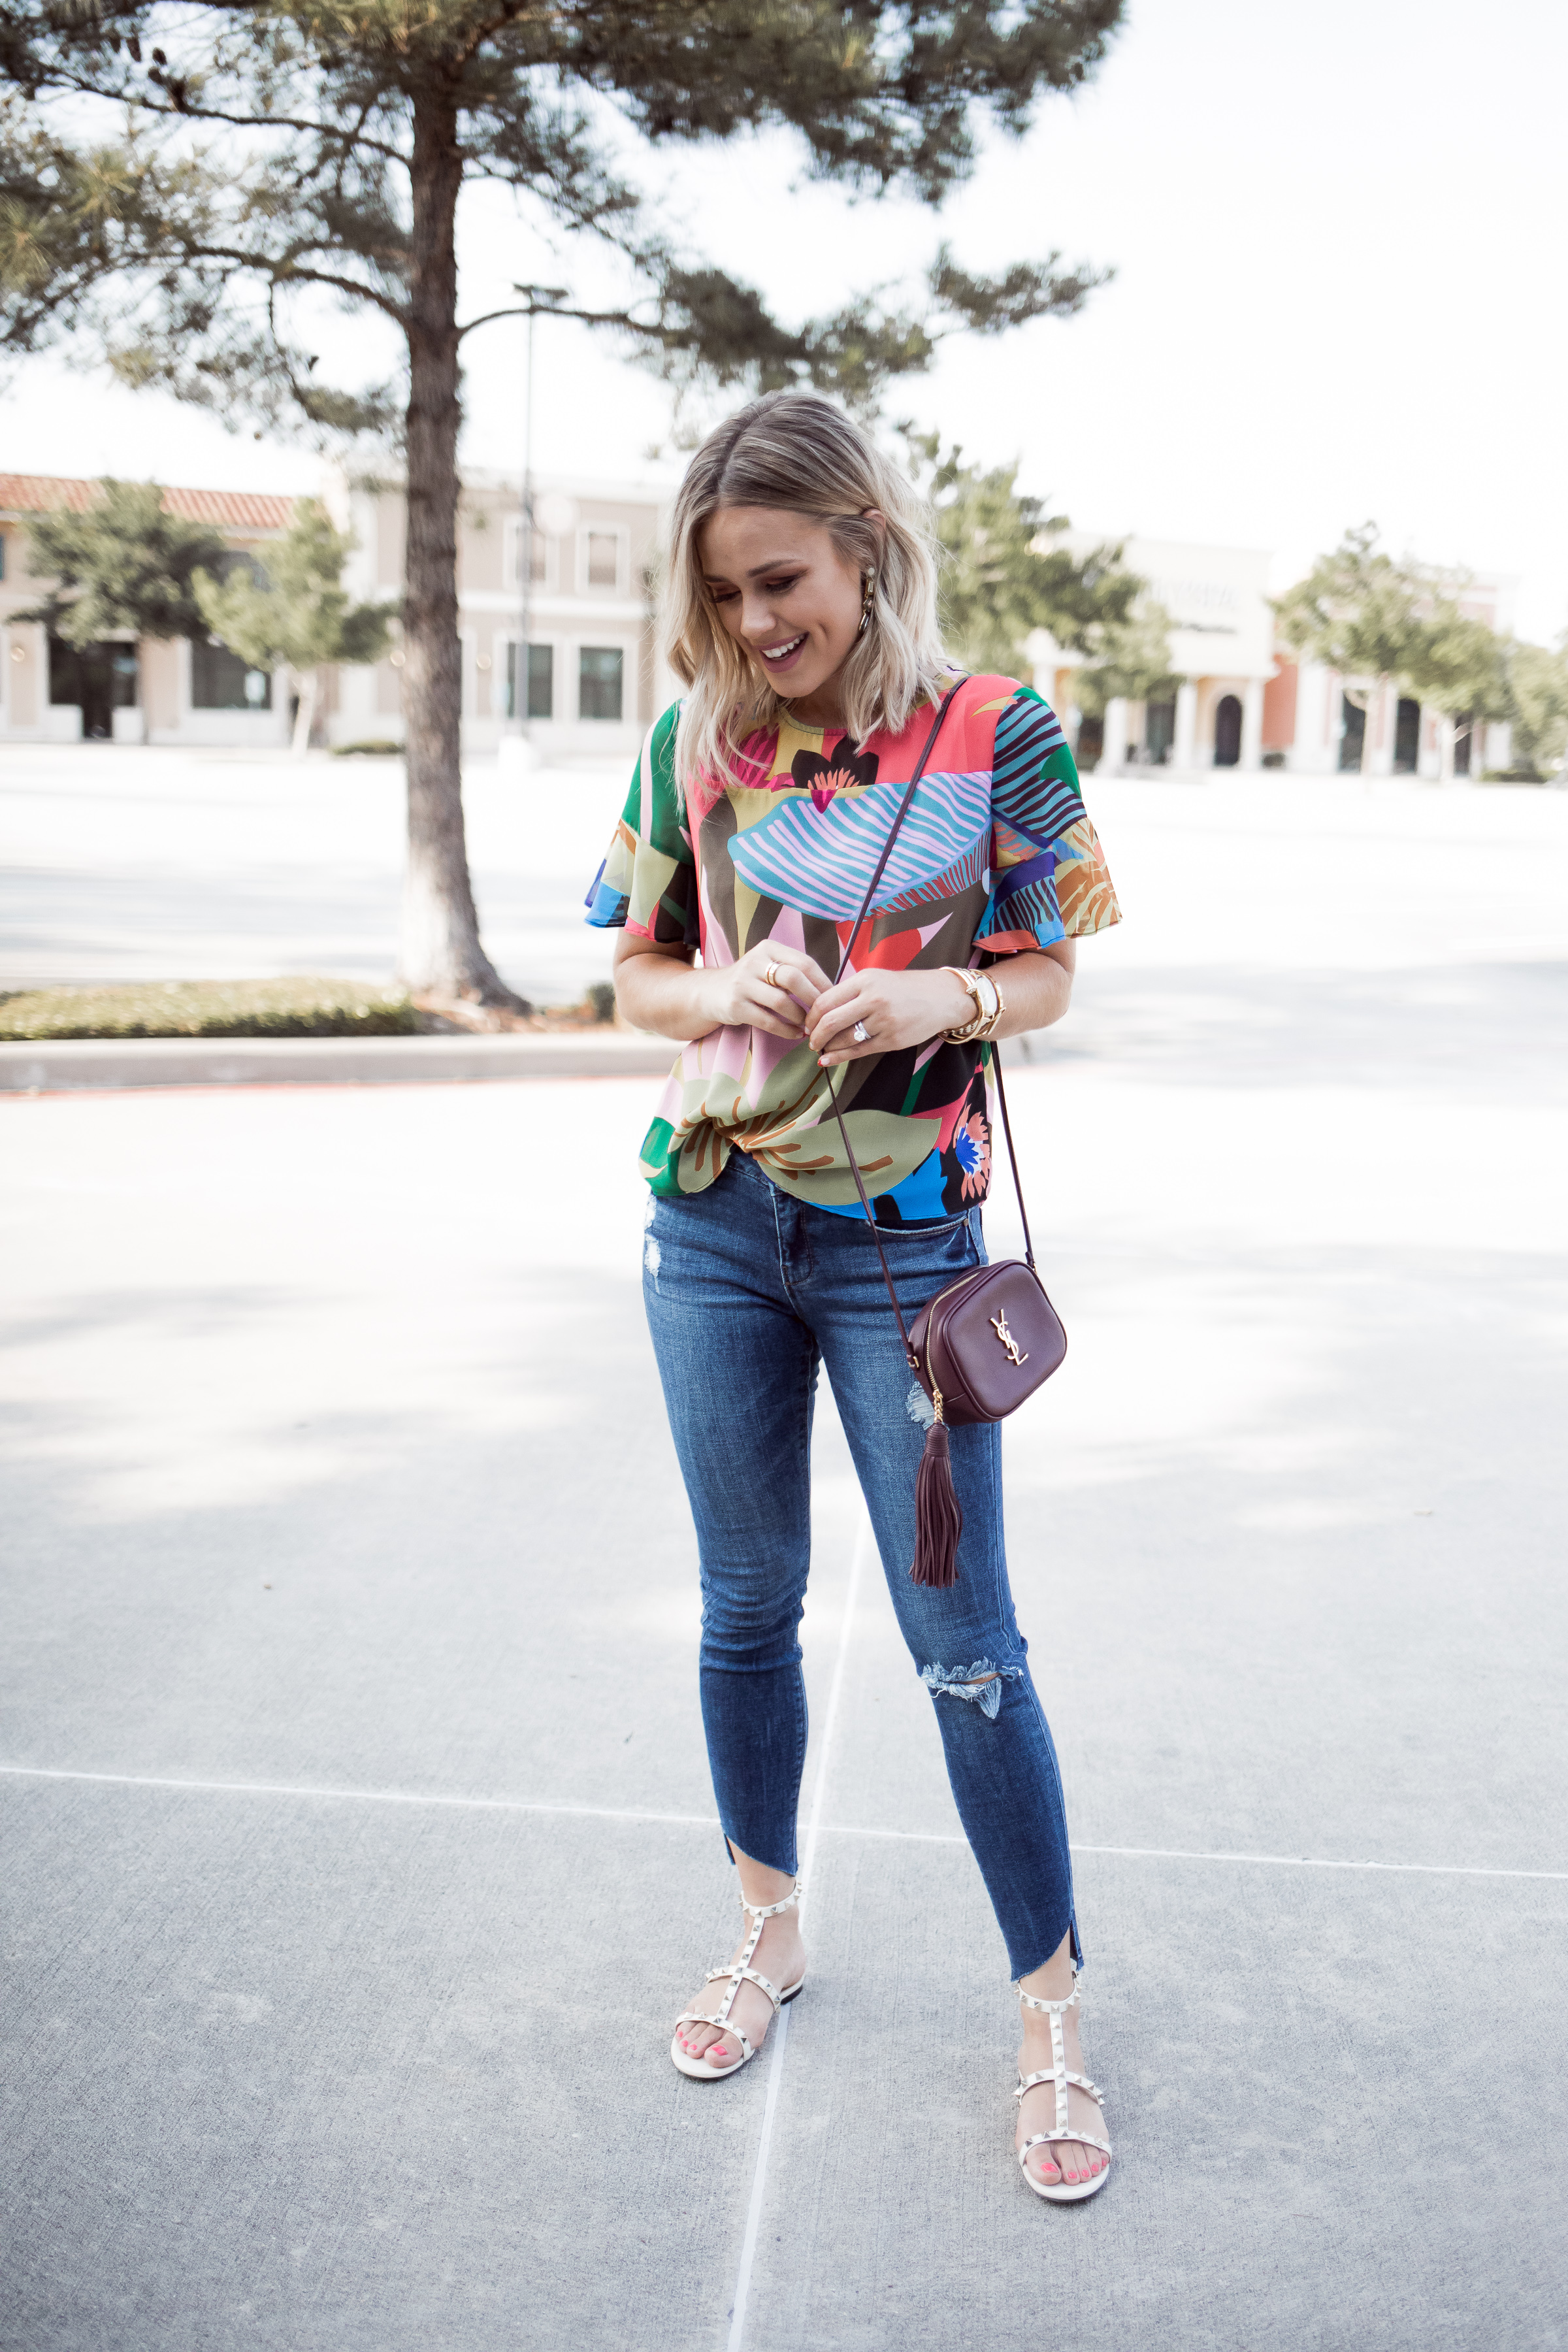 Houston fashion blogger Uptown with Elly Brown shares how to shop name brand items on EBay. Click here for more!